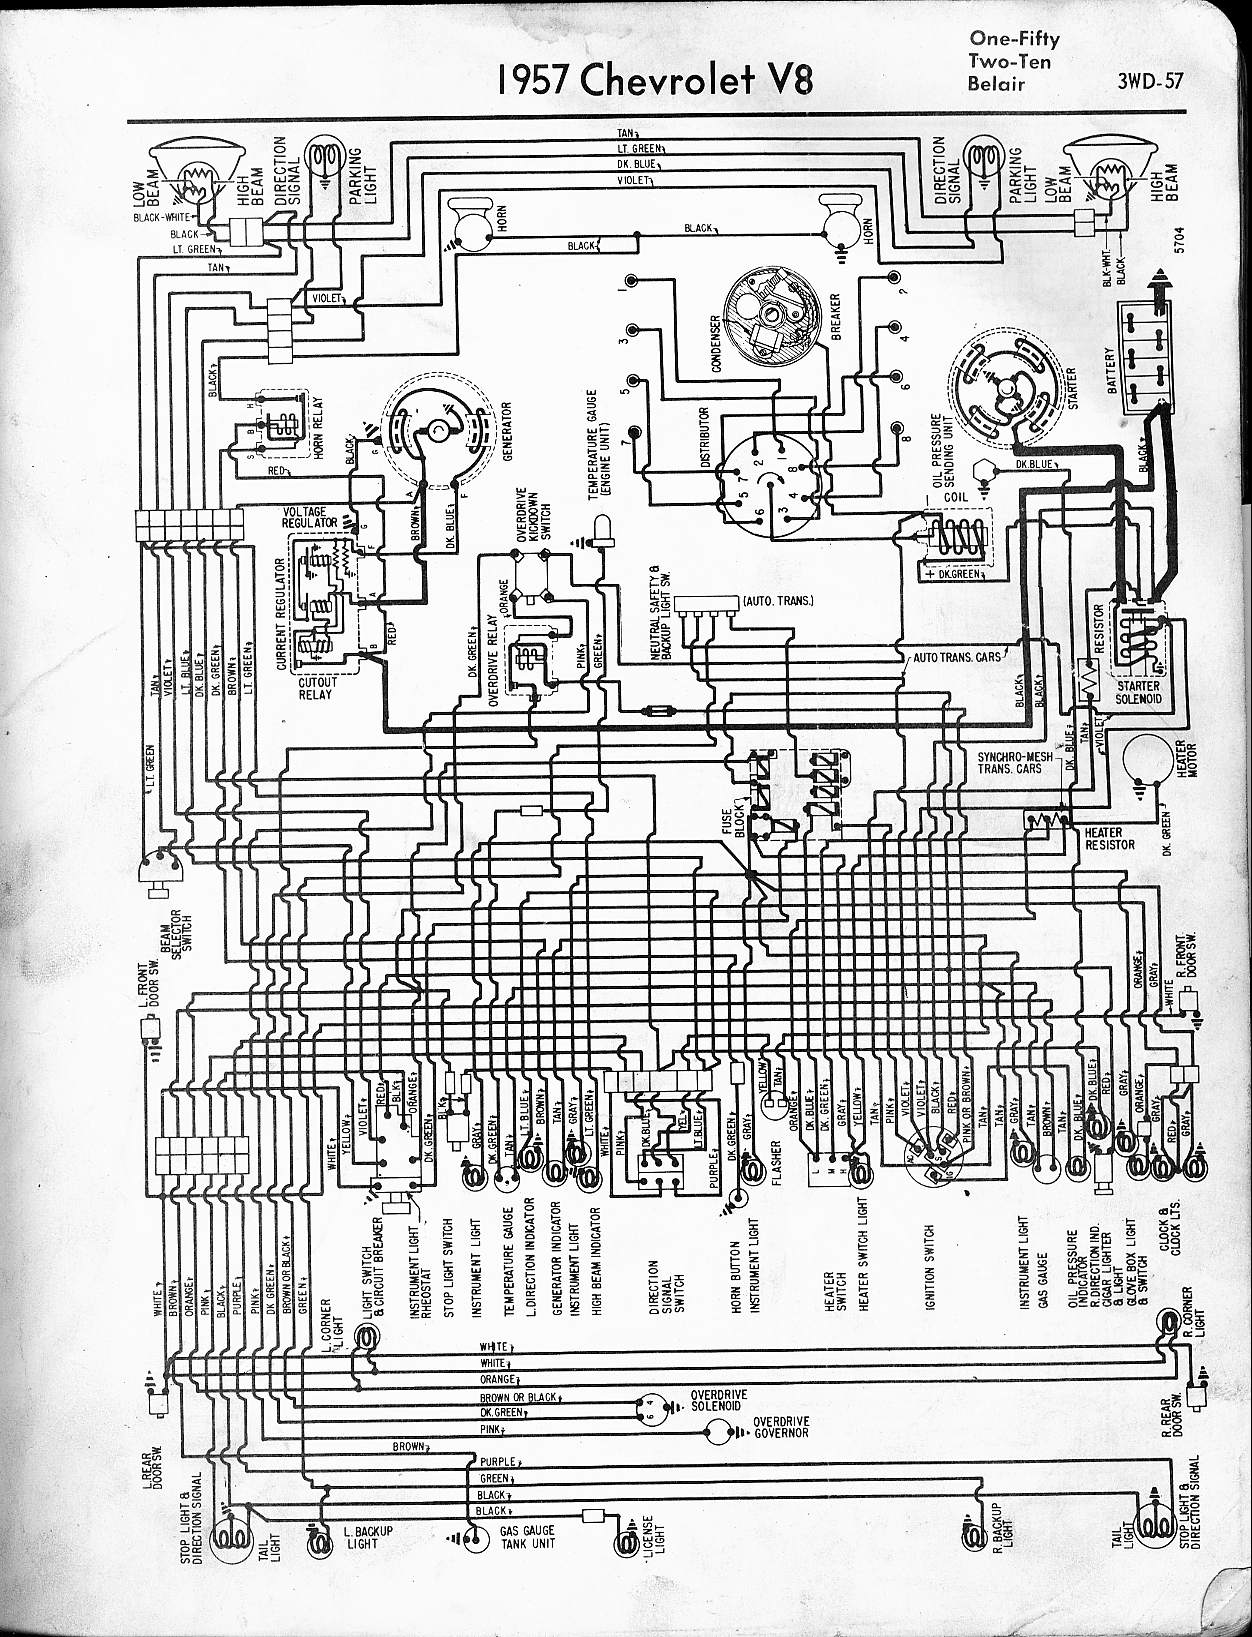 images of 57 chevy wiring diagram diagrams wire center u2022 rh linxglobal co 1957 Chevy Wiring Harness Diagram 1957 Chevy Wiring Harness Diagram